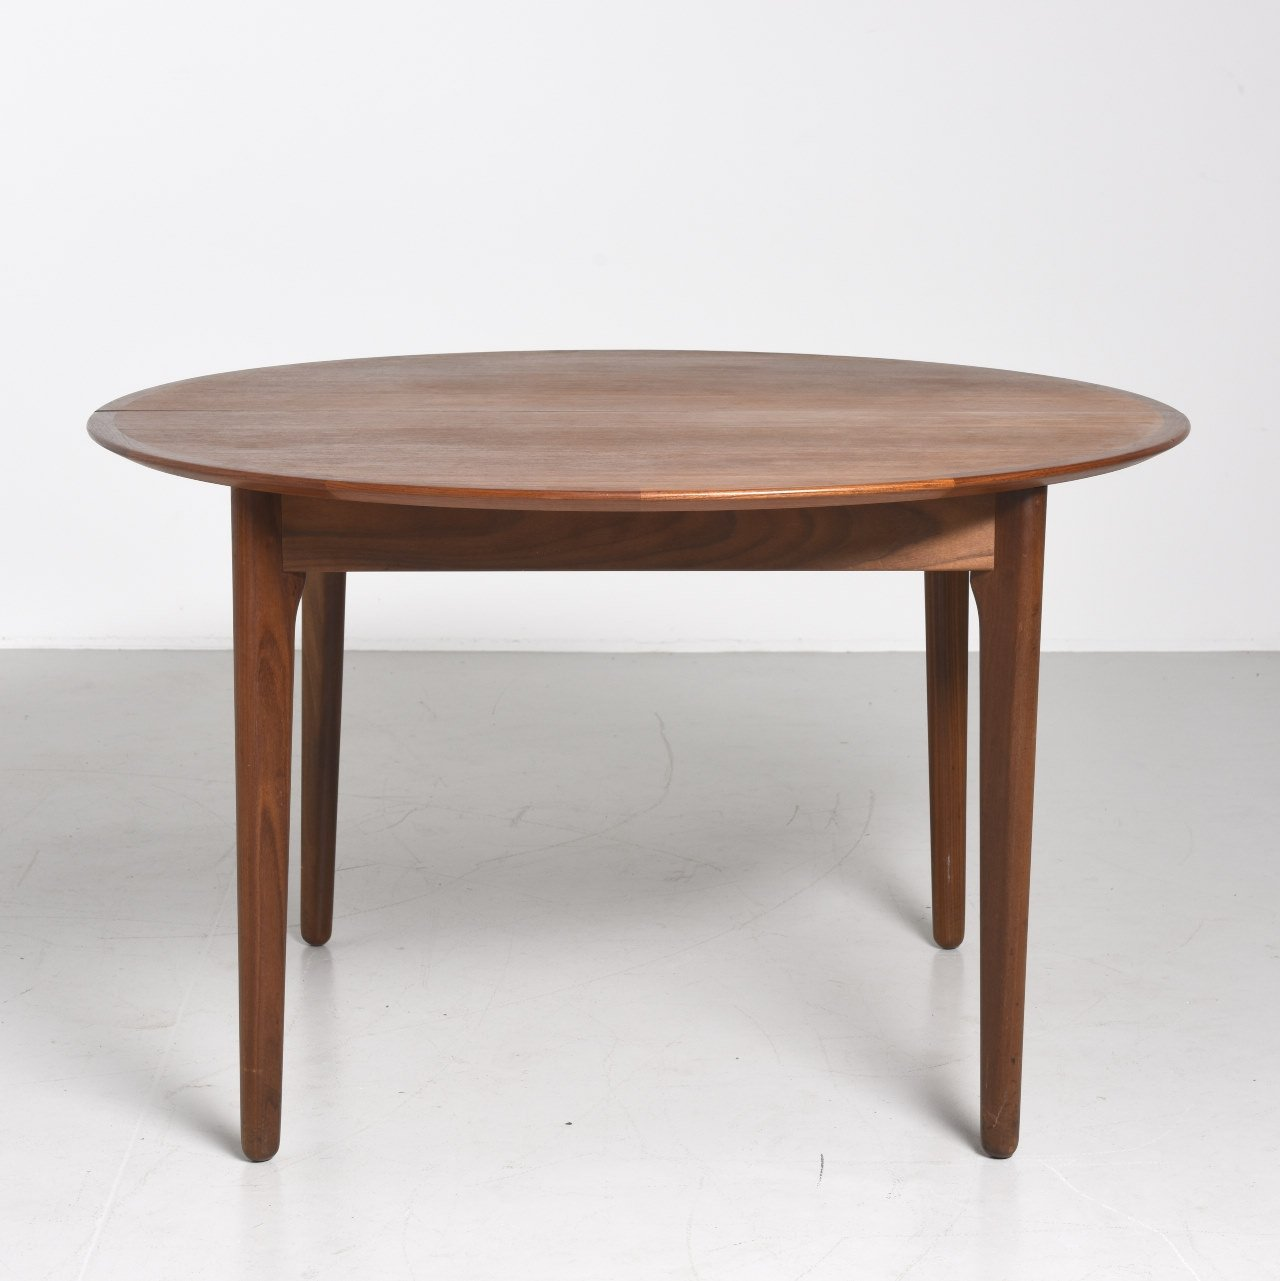 Round Dining Table In Teak With 1 Extension 1960s 66324